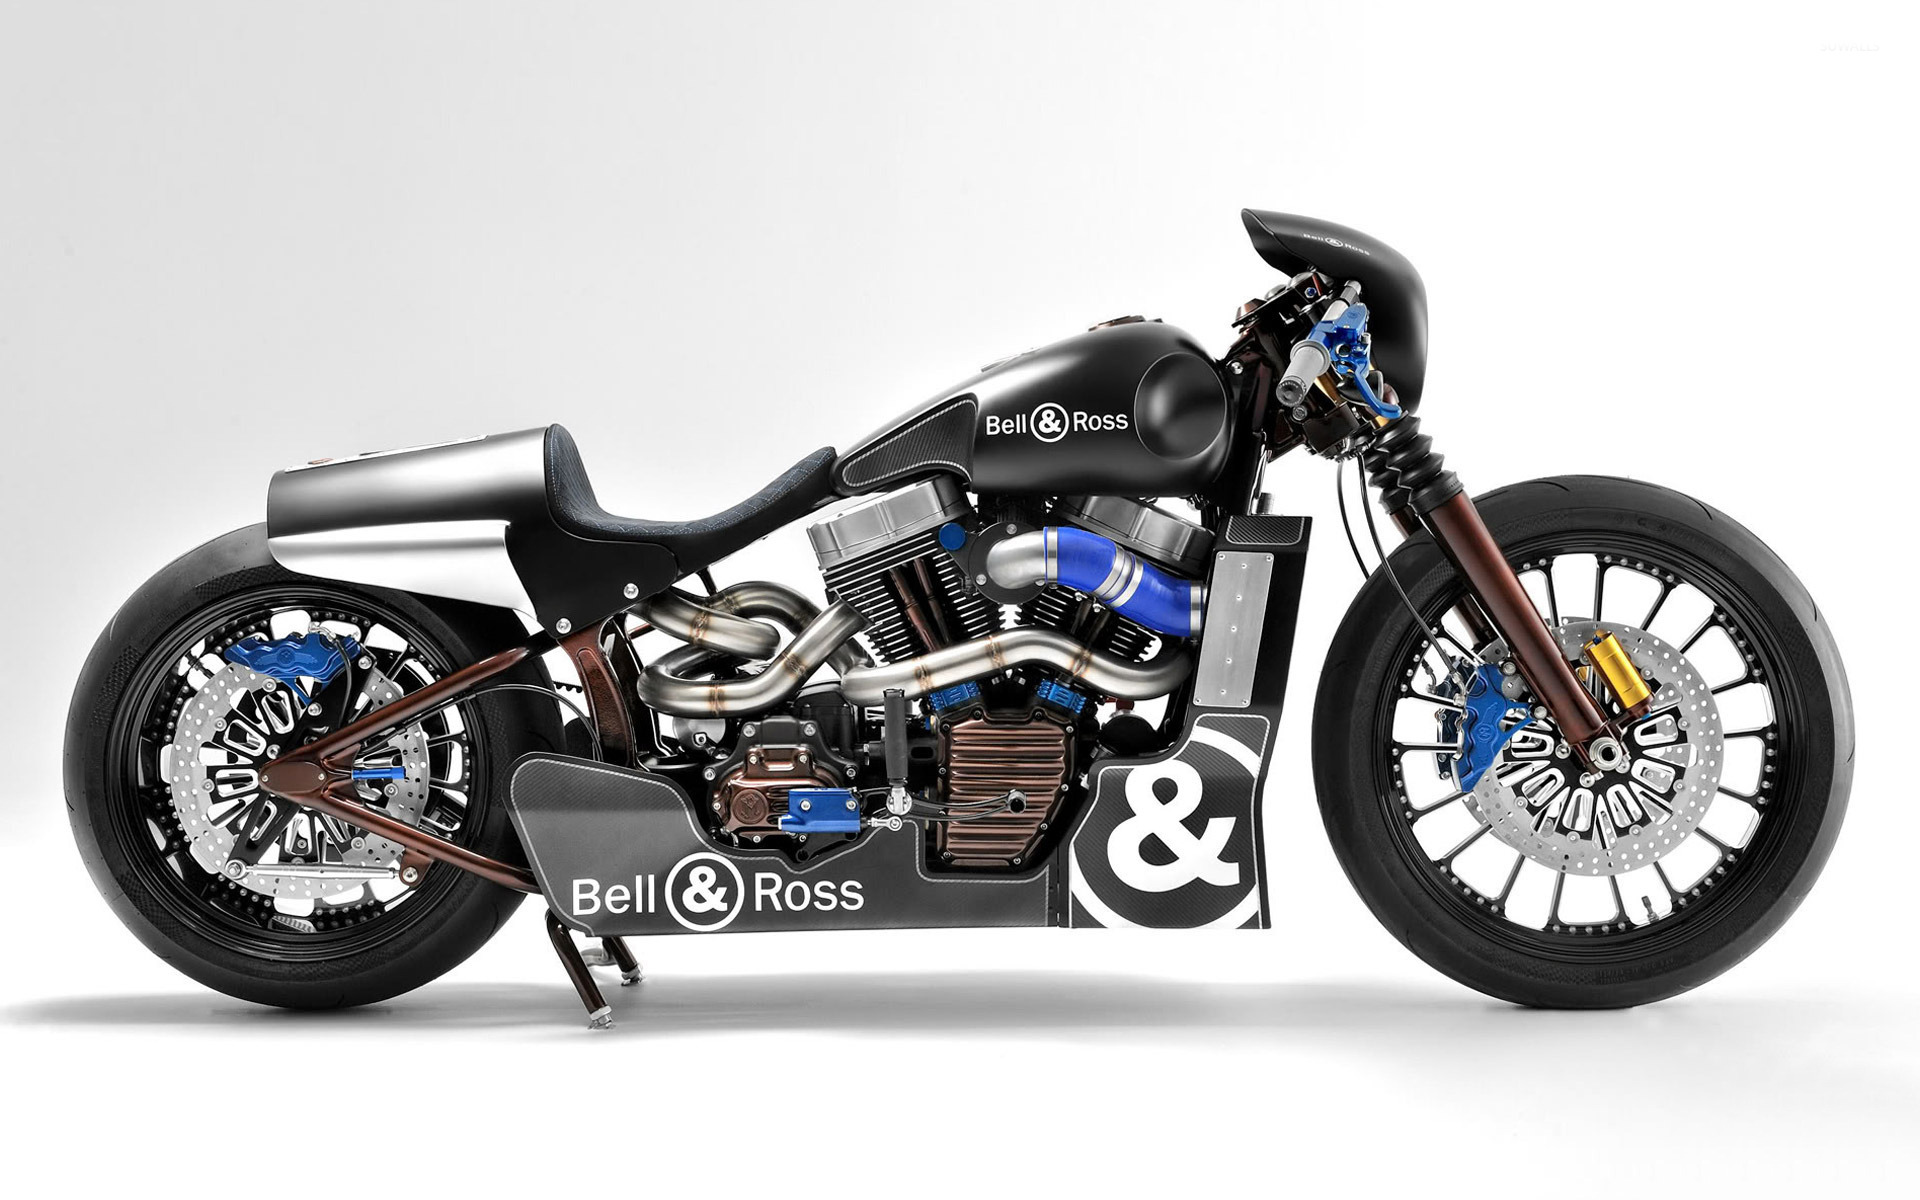 bell ross harley davidson side view wallpaper. Black Bedroom Furniture Sets. Home Design Ideas